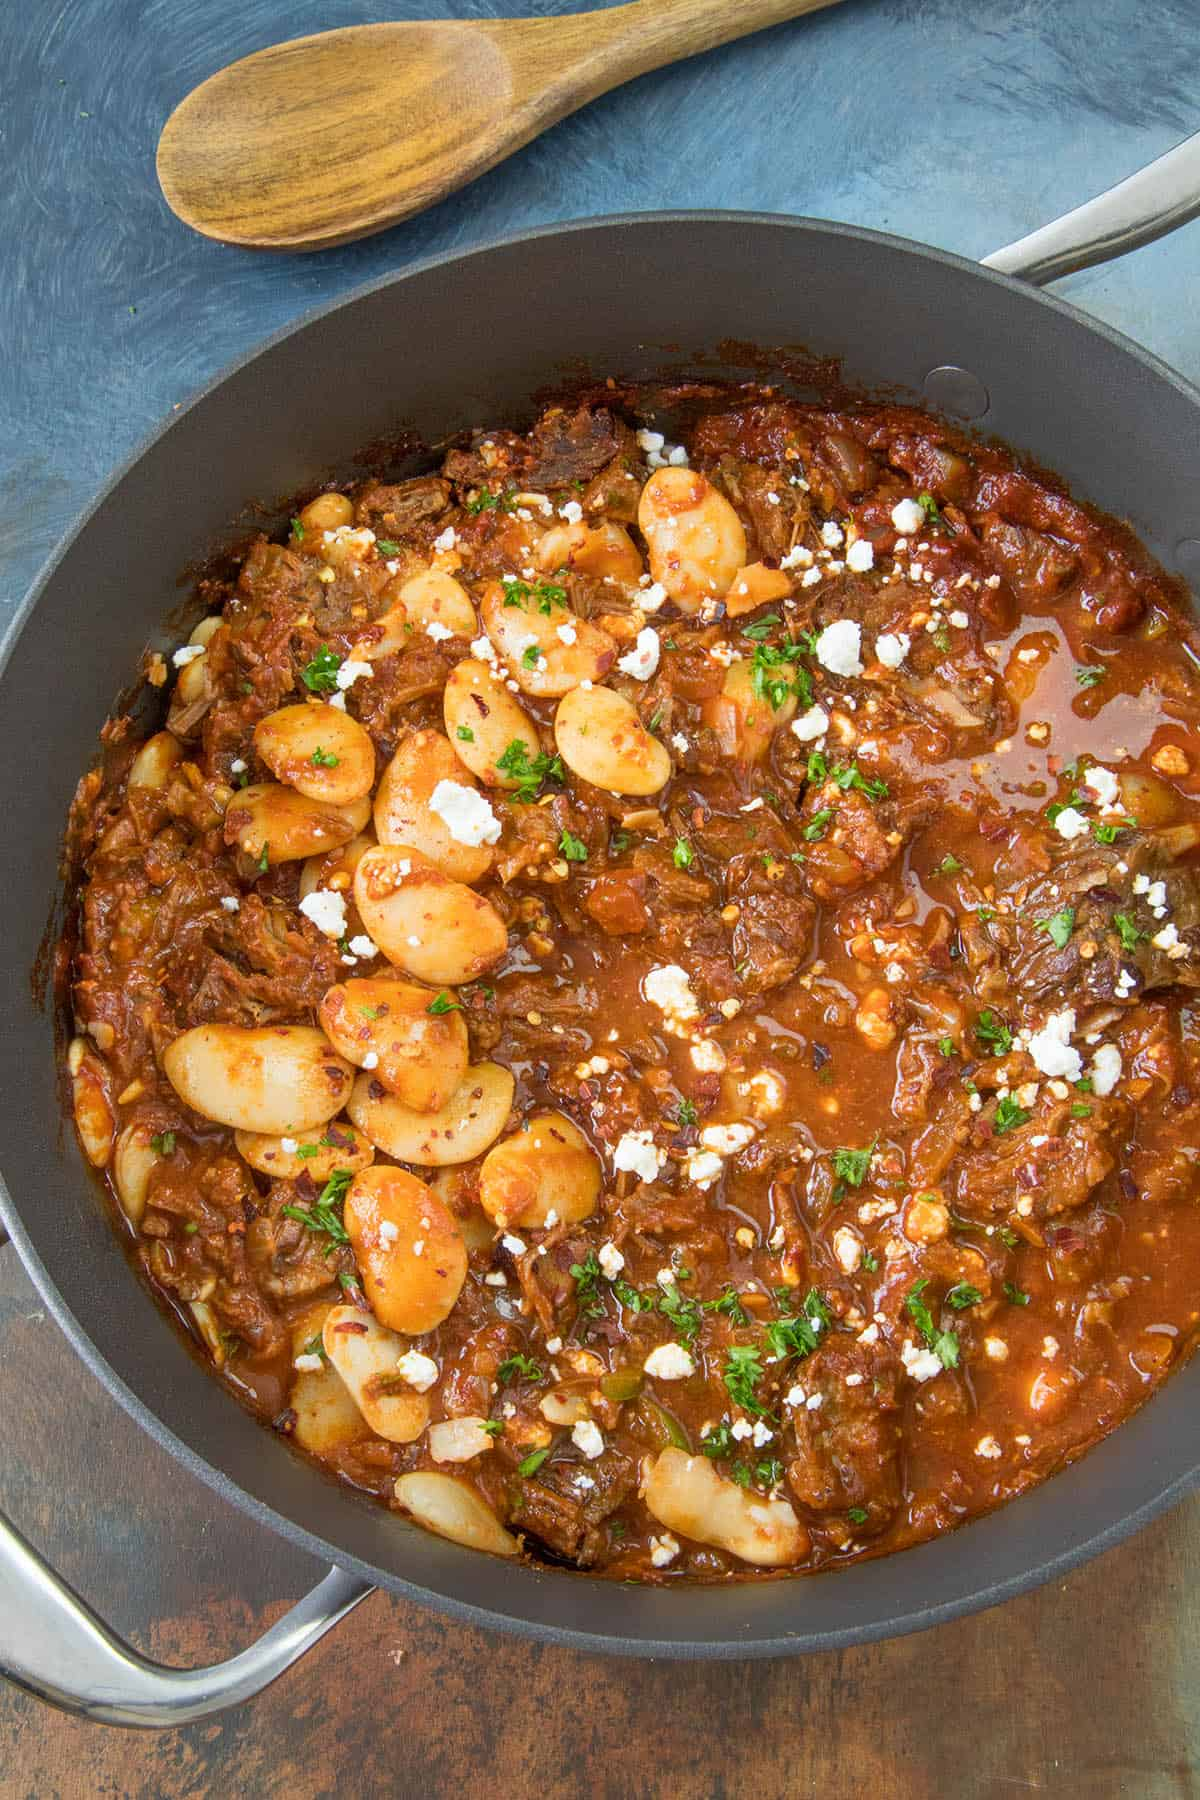 Chili Colorado - a version of the dish with beans